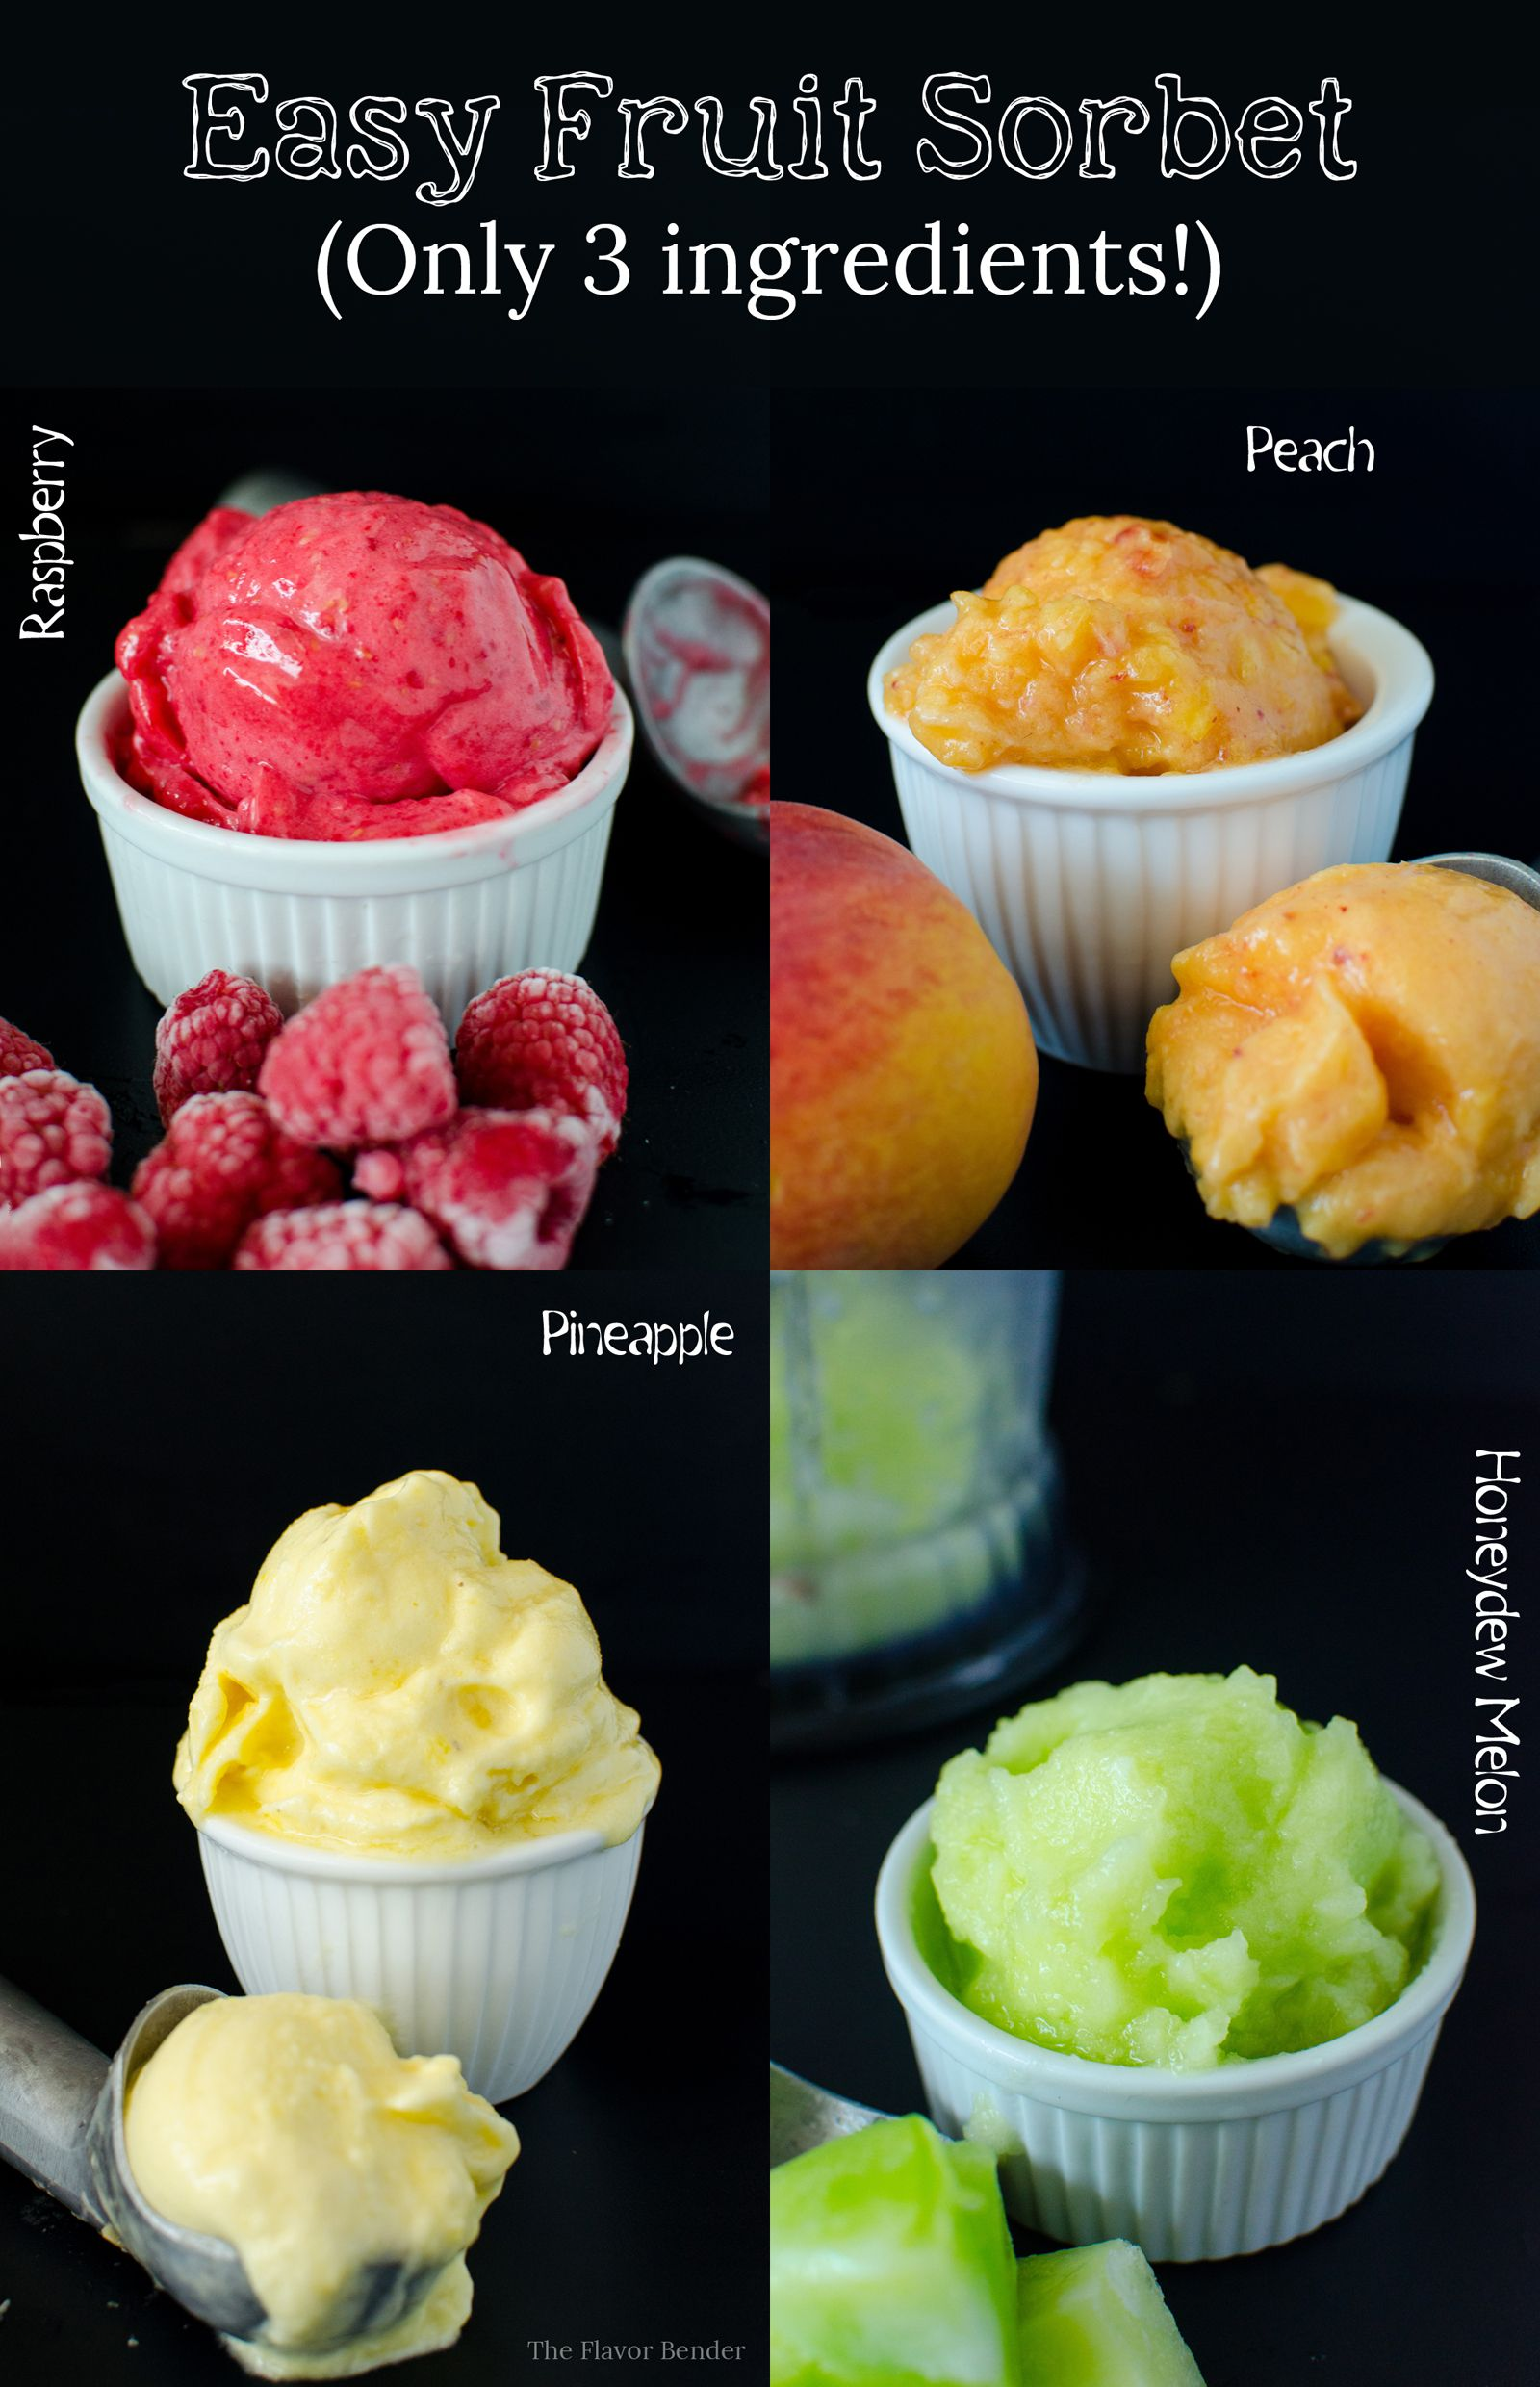 Easy Fruit Sorbet - Make sorbet with almost any kind of fruit any time you want! You only need 3 ingredients (not counting water)! Here are the tricks and tips to apply to your favourite fruits to make Sorbet! Raspberry Sorbet, Peach Sorbet, Honeydew Melon Sorbet, and Pineapple Sorbet! #melonrecipes